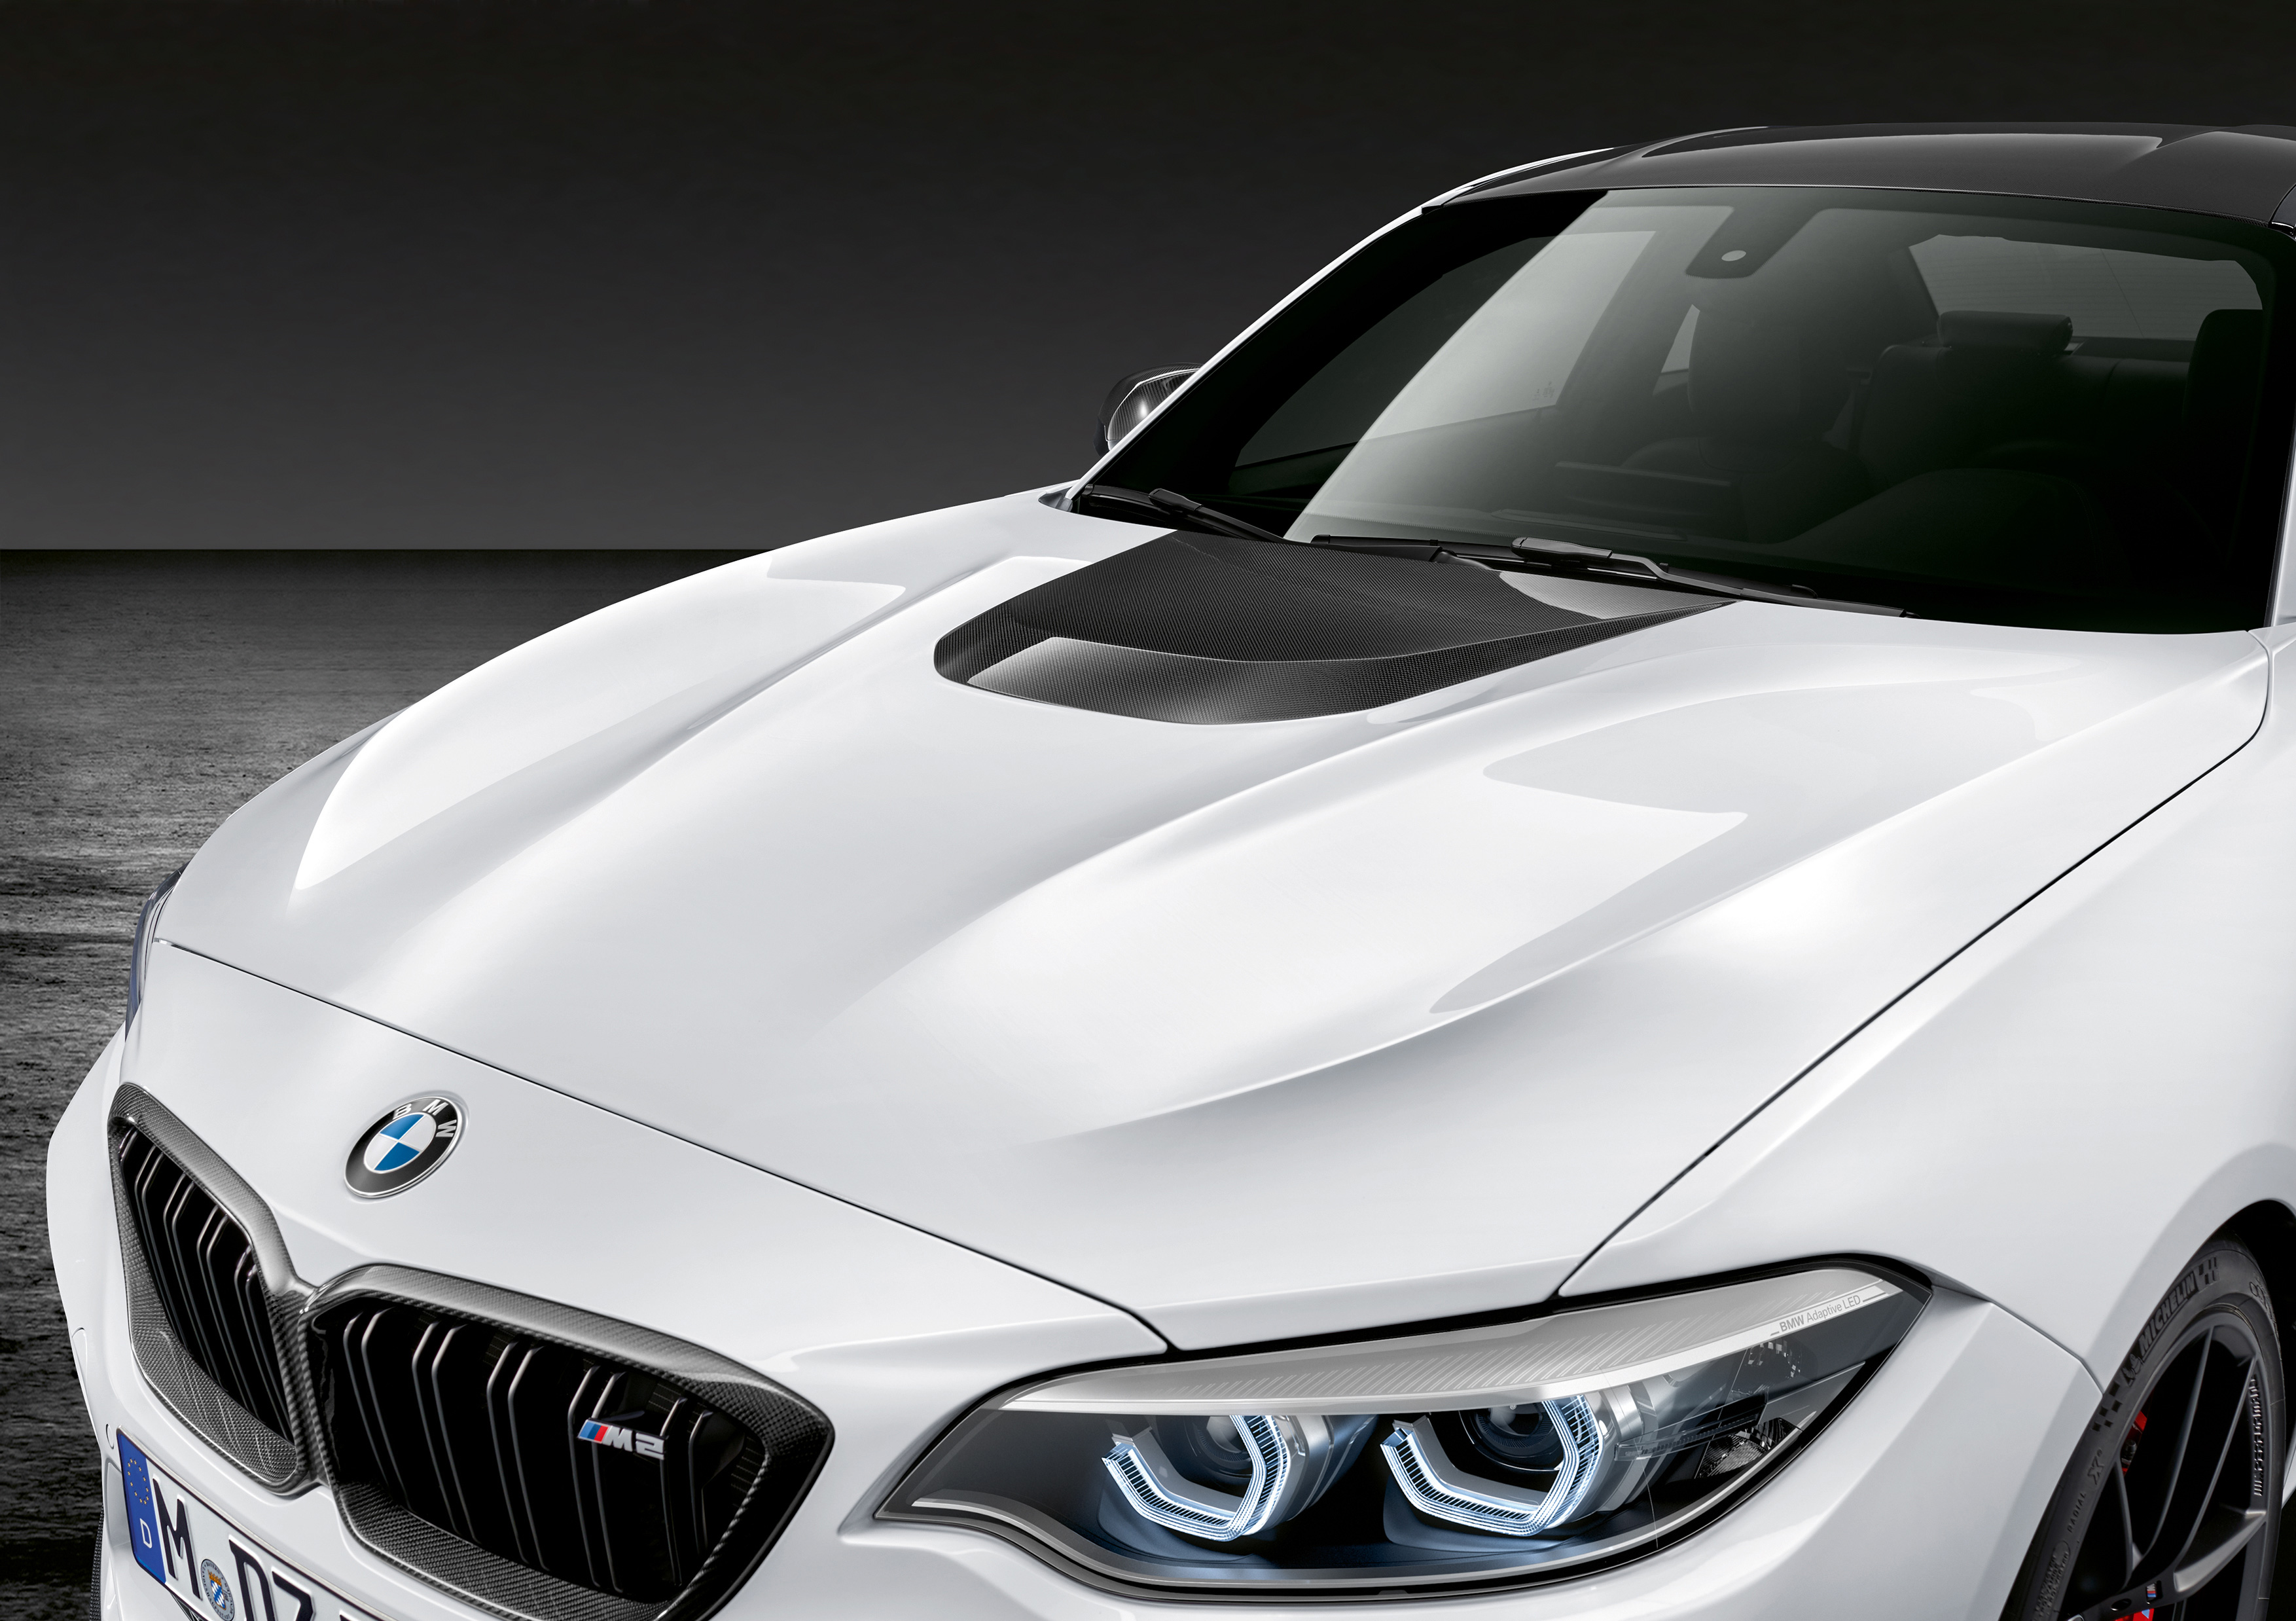 2018 Bmw M2 Competition, HD Cars, 4k Wallpapers, Images ...